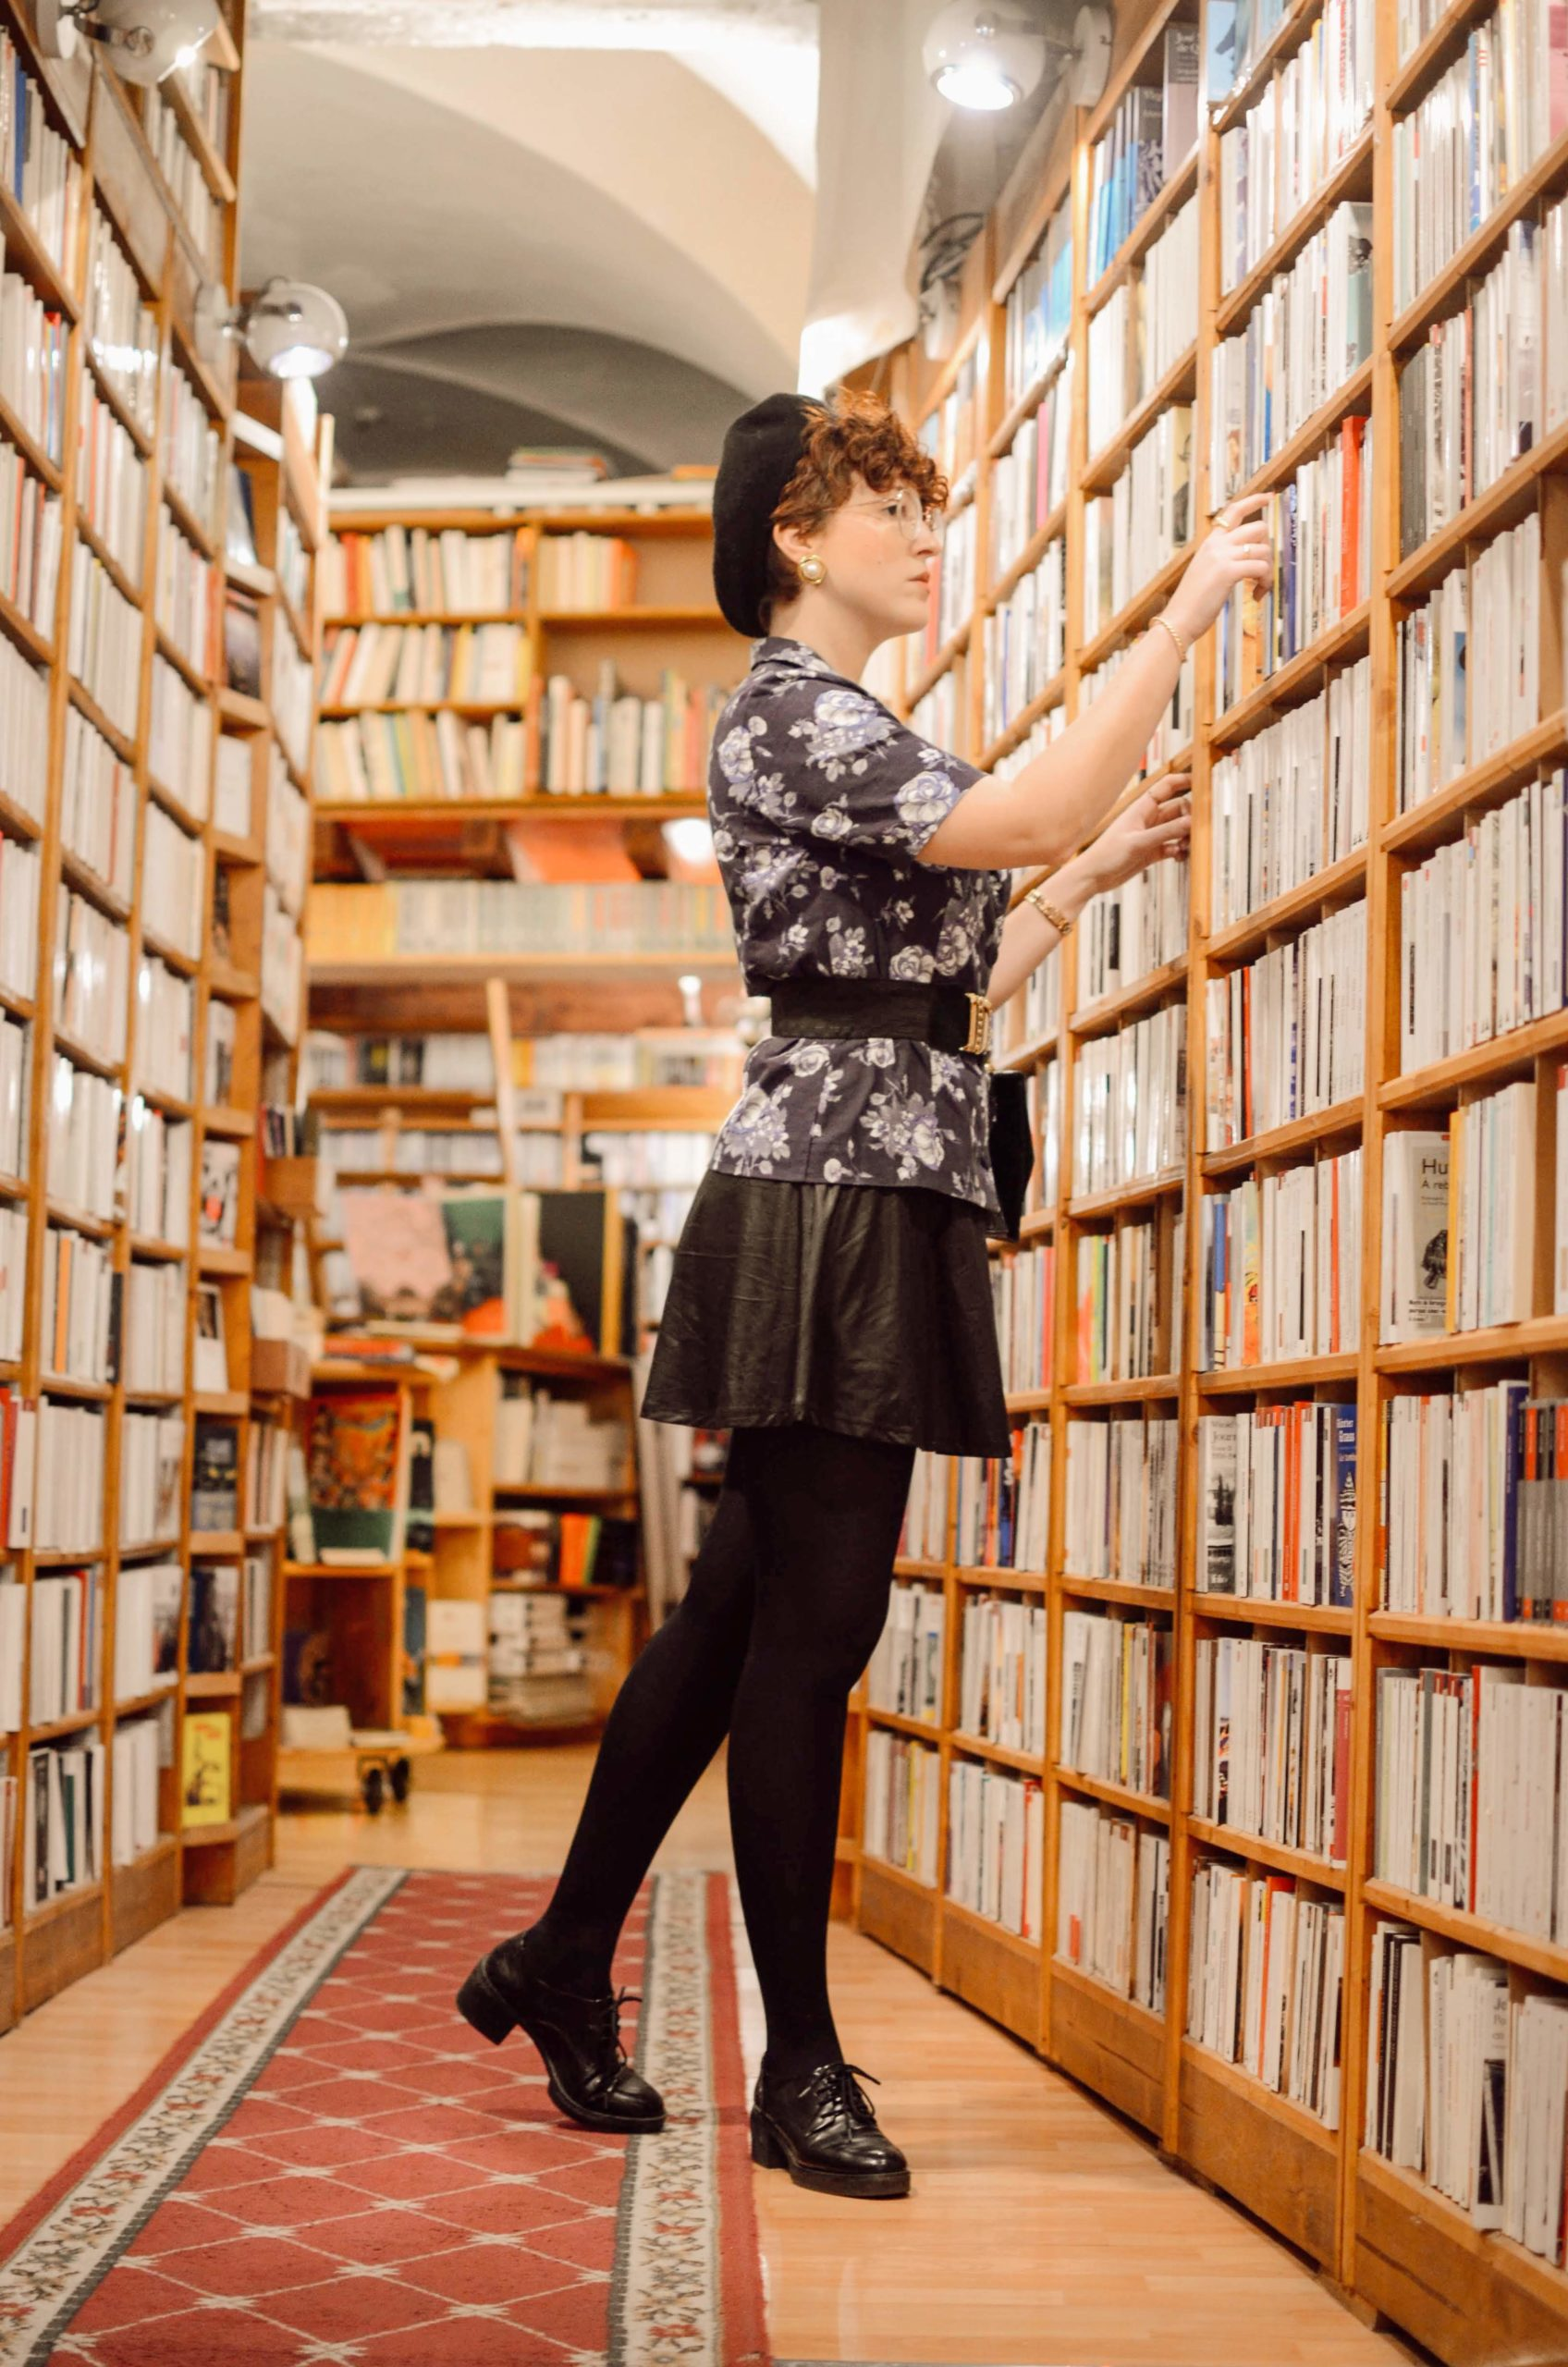 shooting à la librairie - library photoshoot